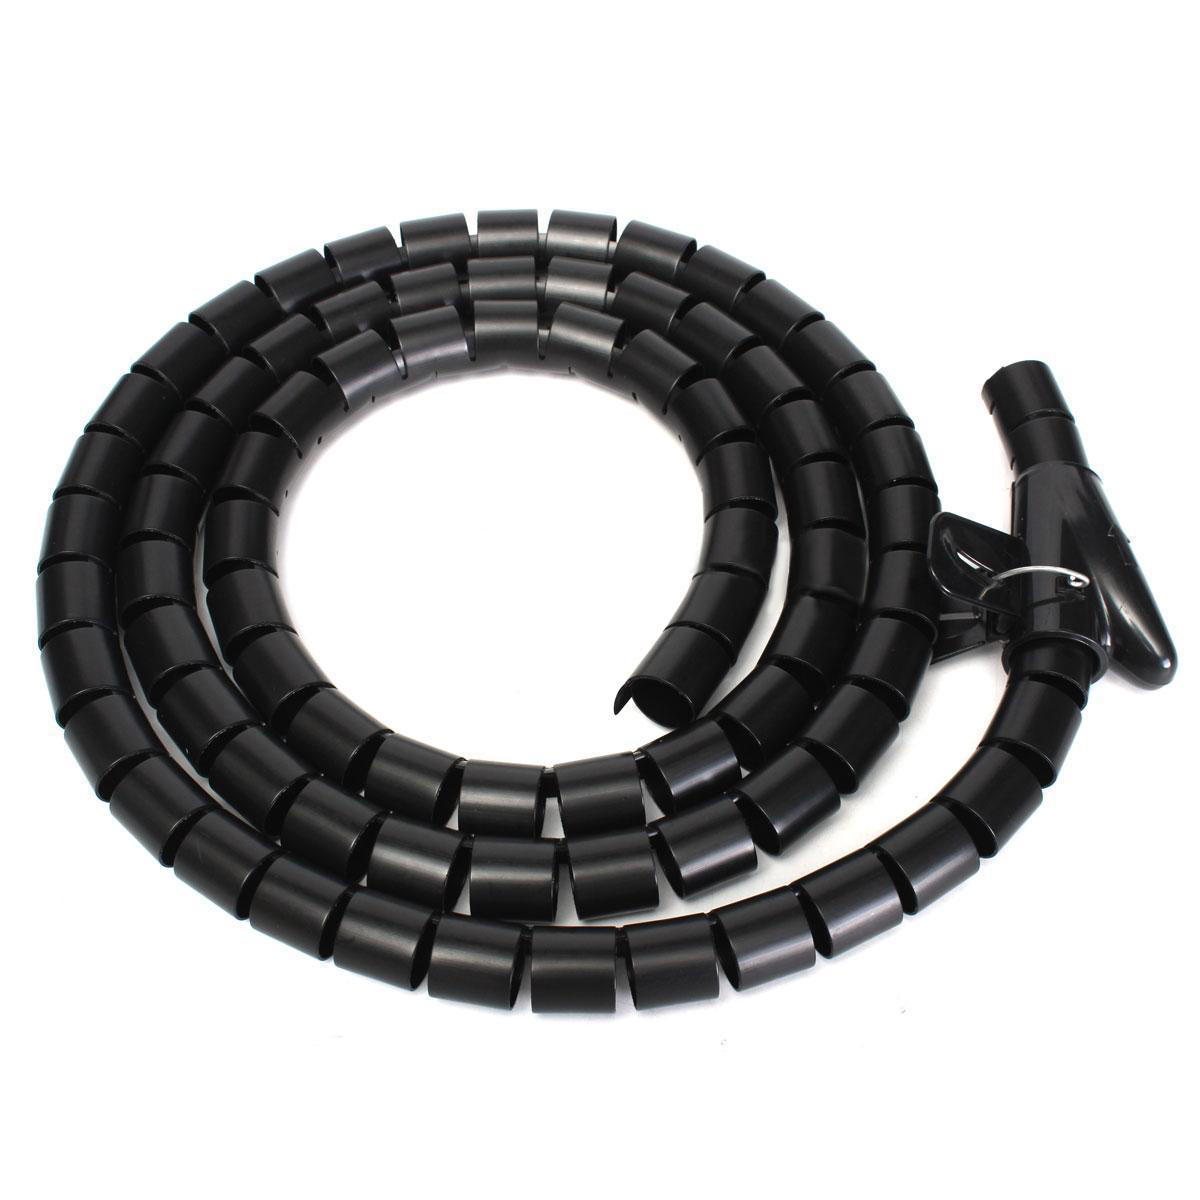 1pc 25mm Spiral Wrapping Band 2m Black Cable Tidy Cord Wire Banding ...